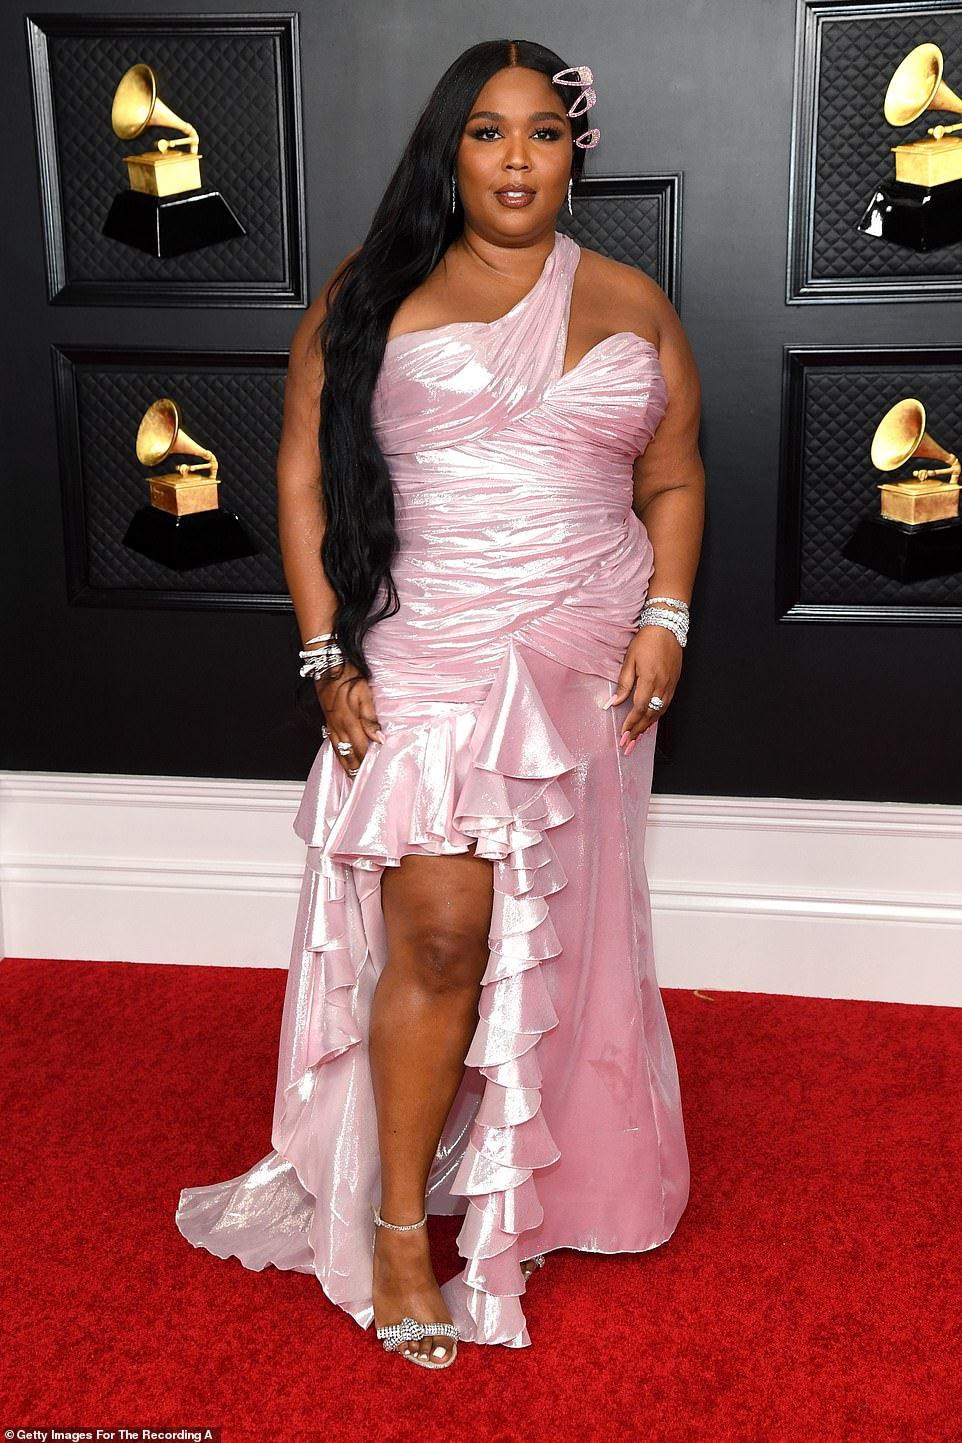 Blush: Lizzo later changed into a pastel pink dress in a similar style but floor-length